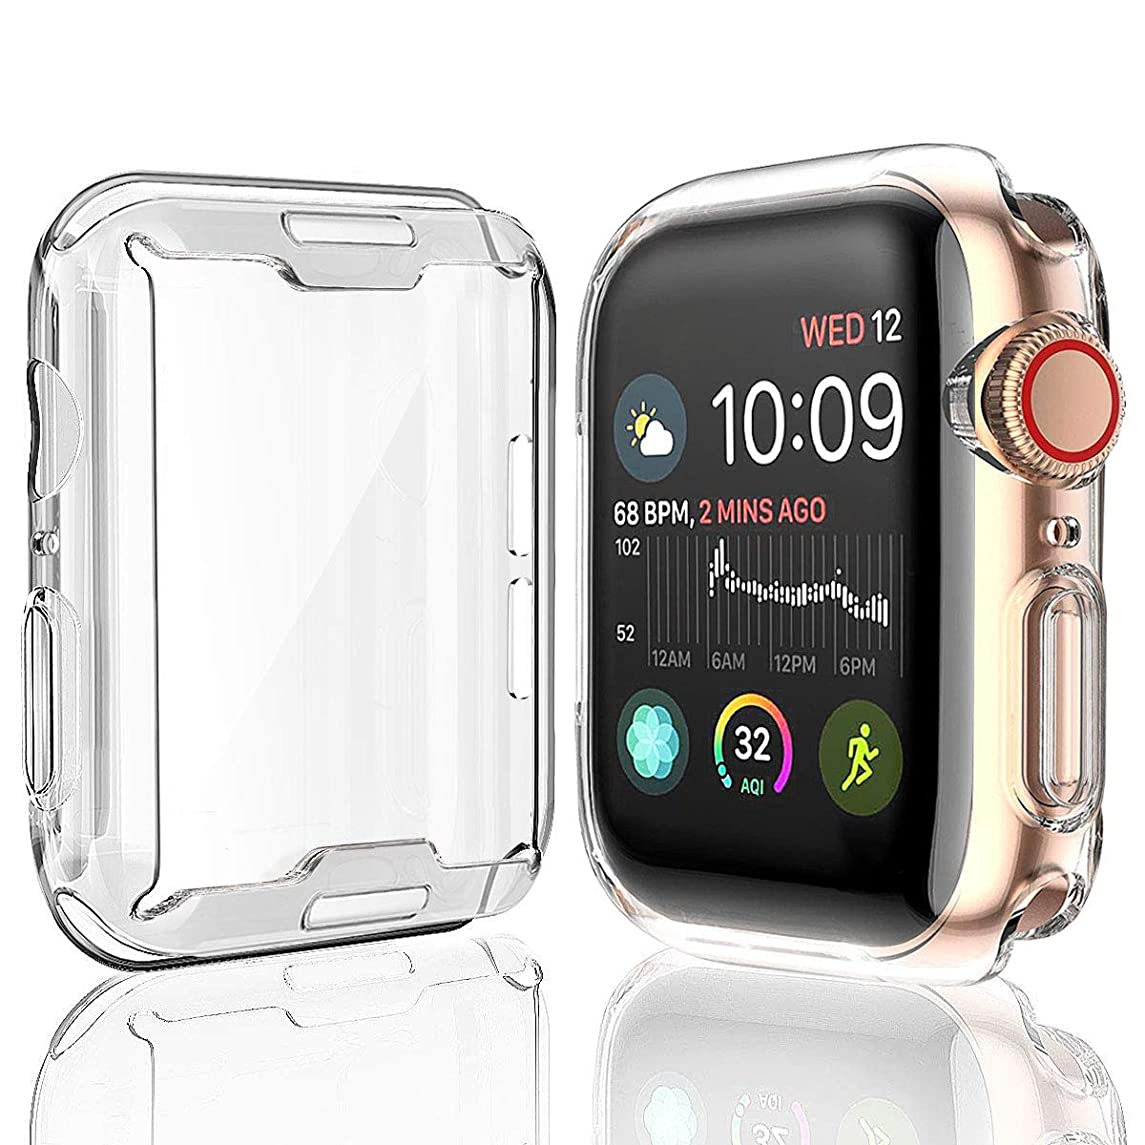 [2-Pack] Julk Case for Apple Watch Series 4 Screen Protector 40mm, 2018 New iWatch Overall Protective Case TPU HD Clear Ultra-Thin Cover for Apple Watch Series 4 (40mm)